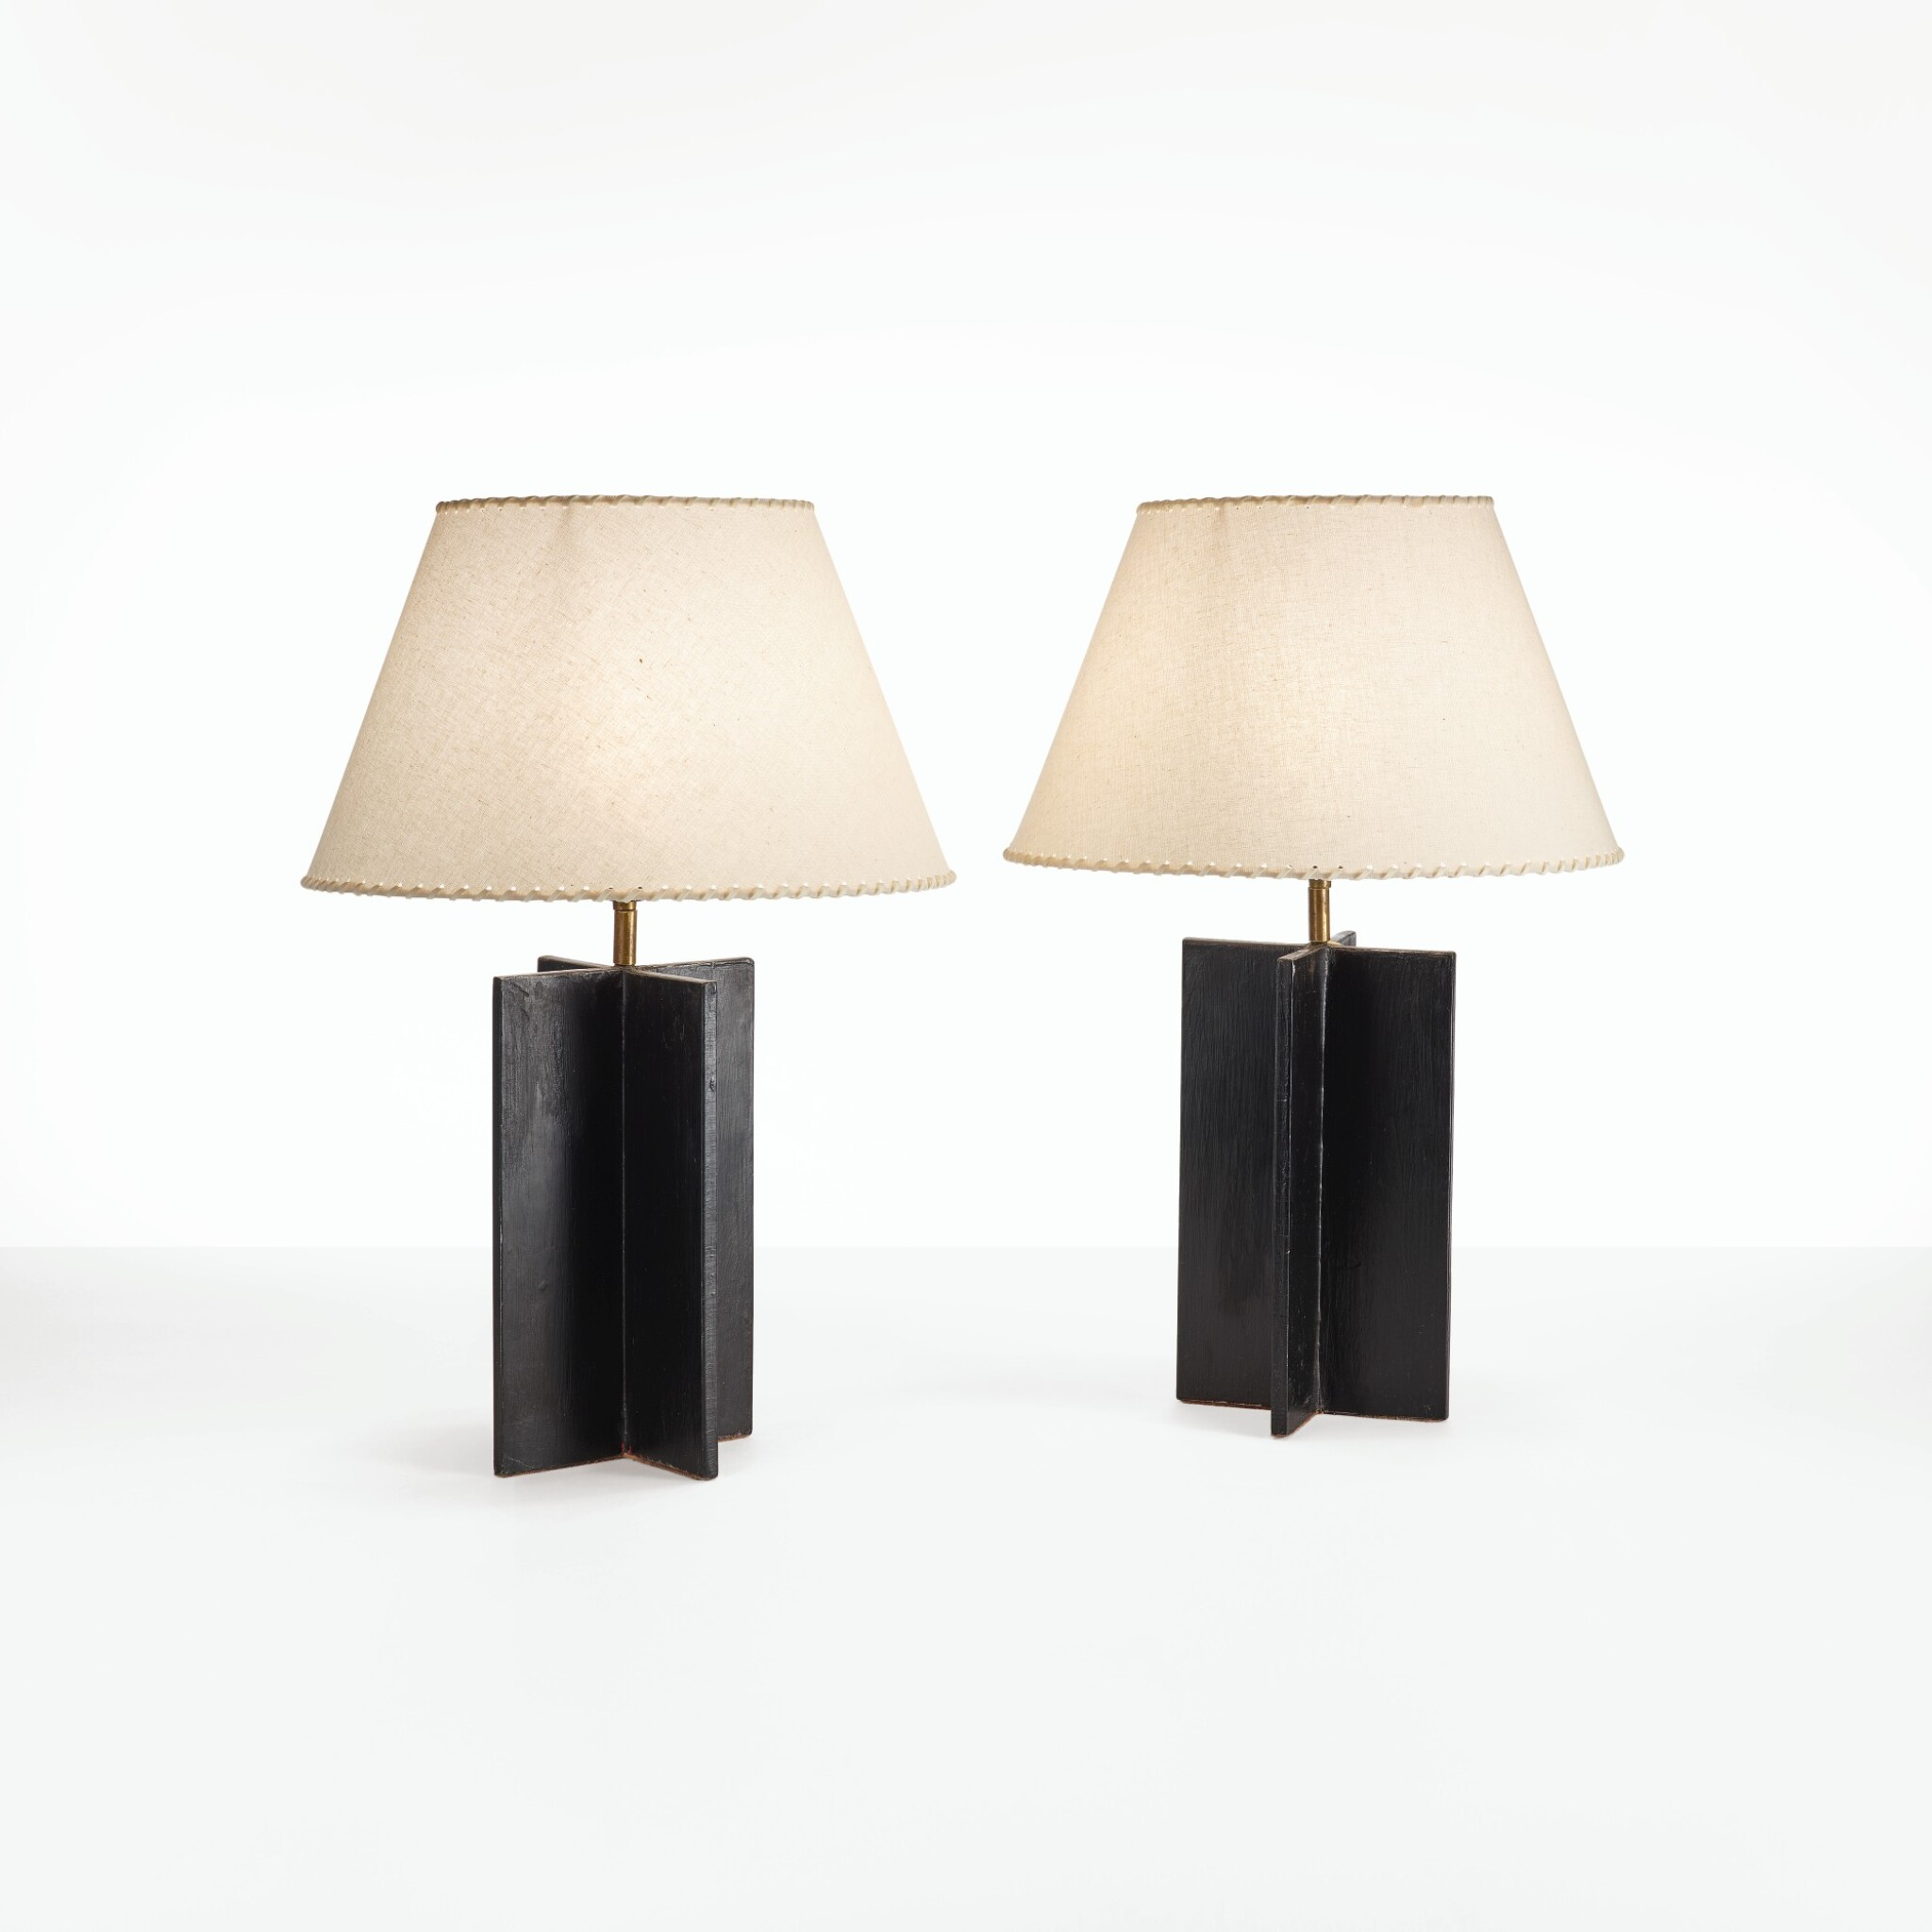 """View full screen - View 1 of Lot 88. JEAN-MICHEL FRANK 